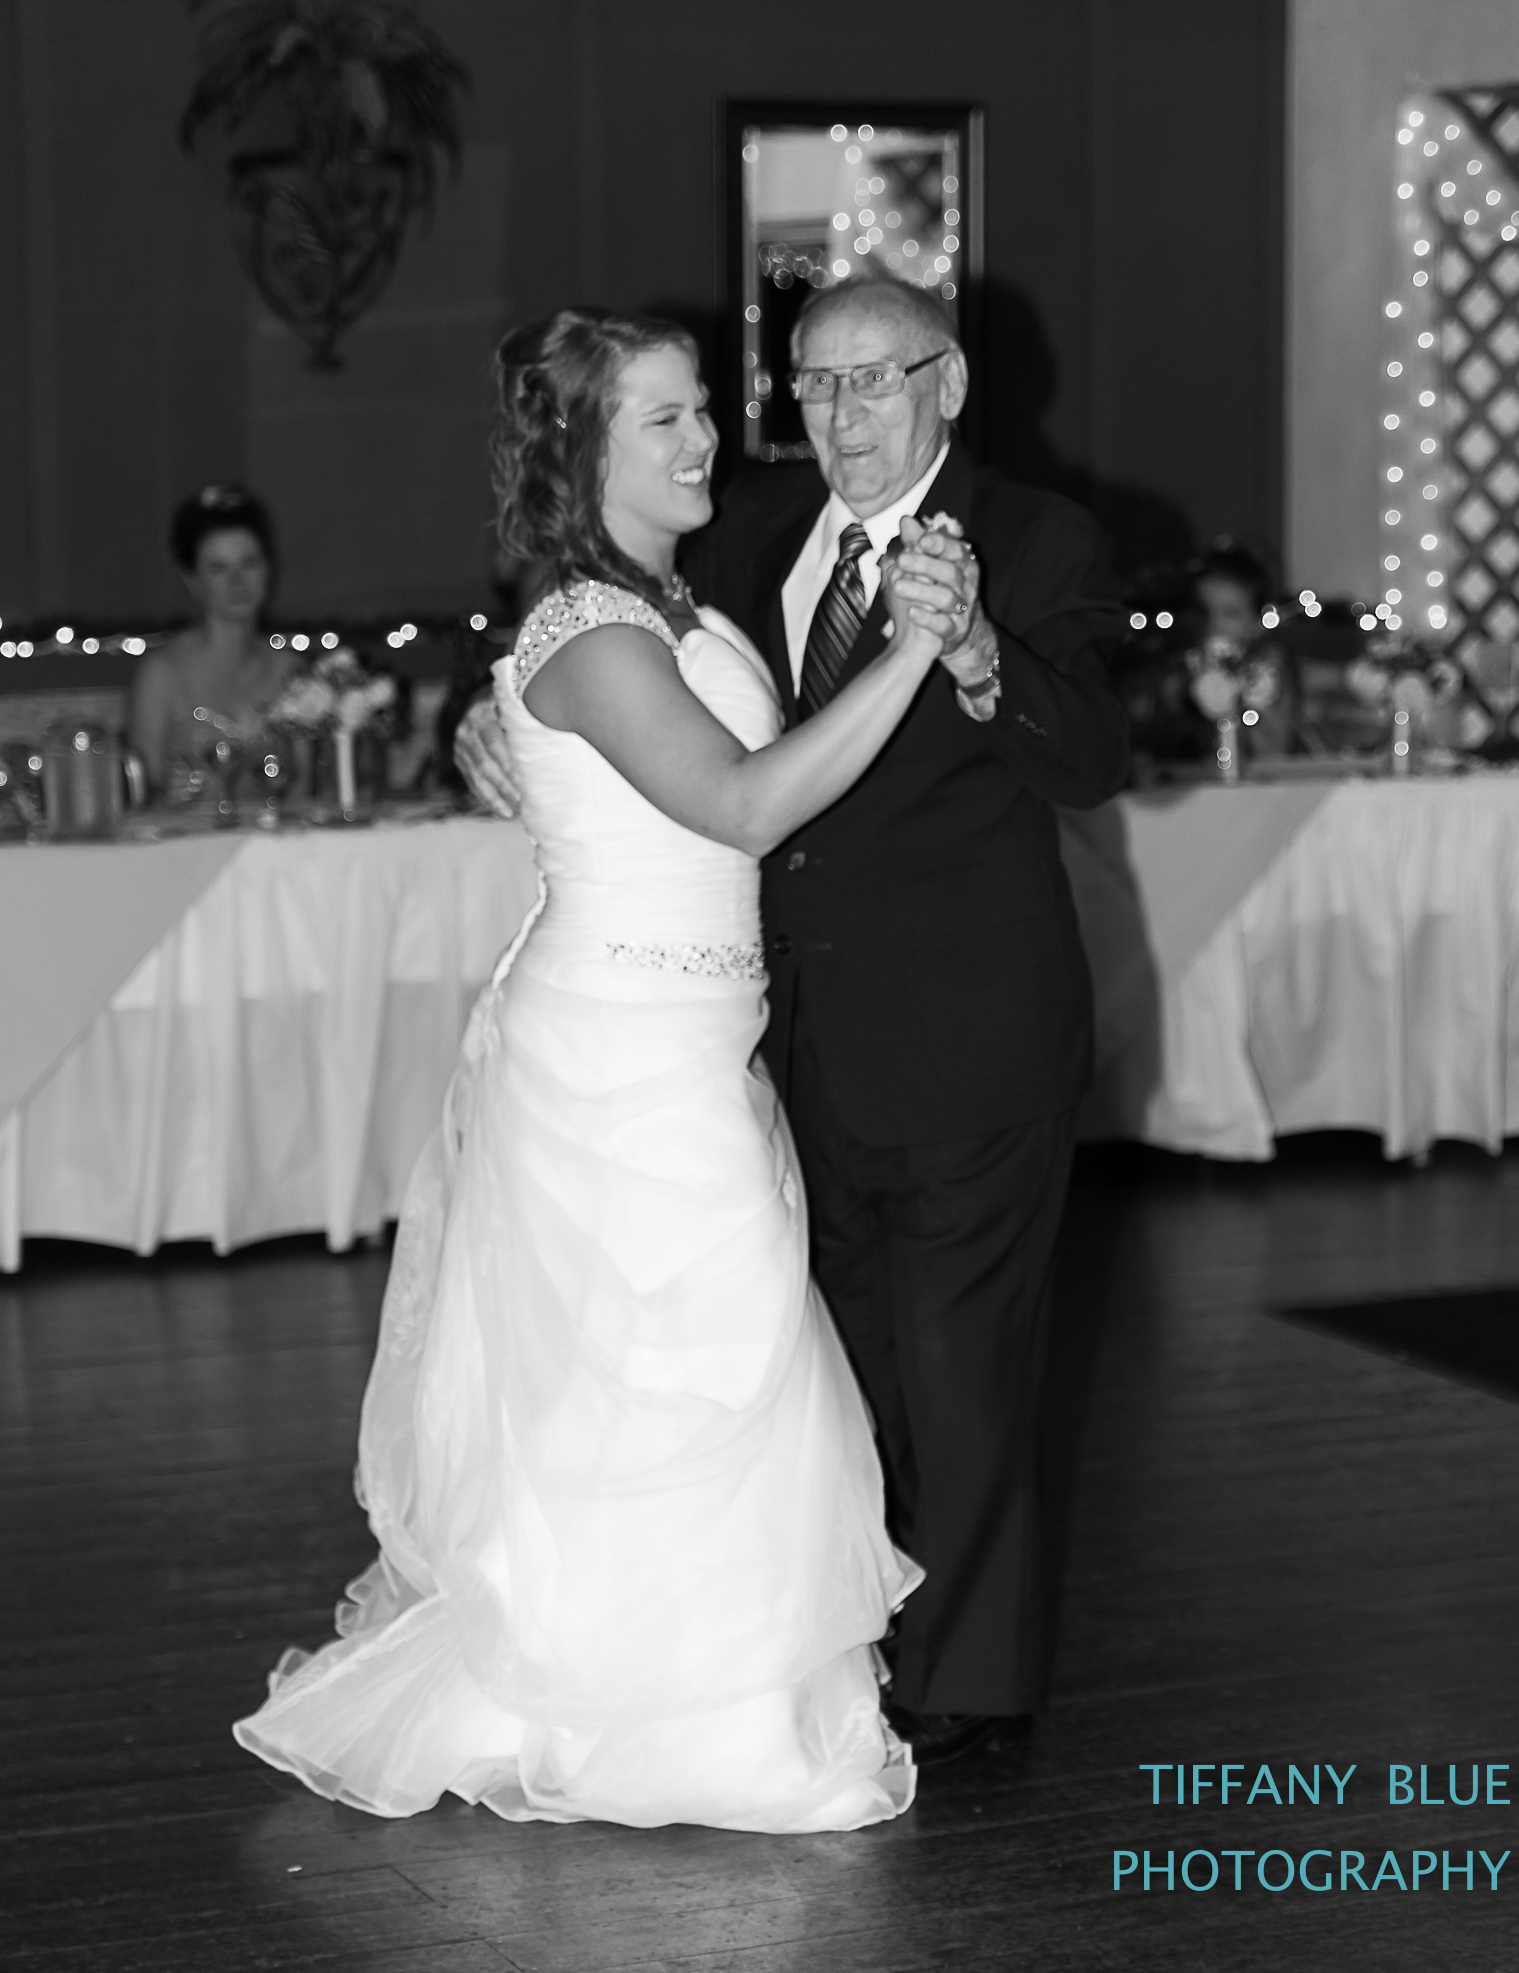 Chris & Nicole's Wedding (60 of 76).jpg